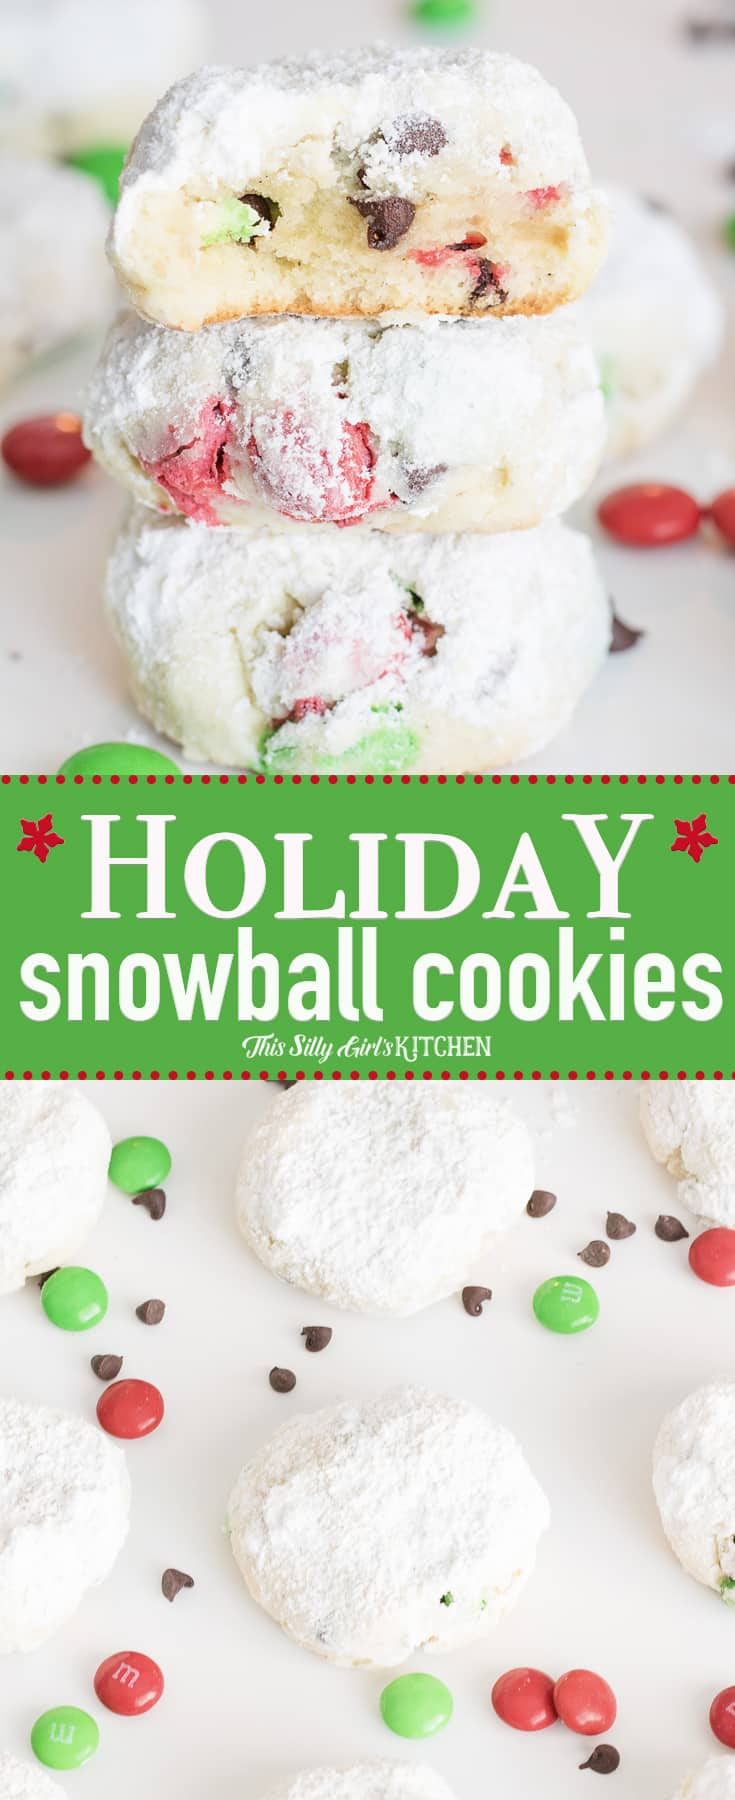 Holiday Snowball Cookies, cream cheese Christmas cookies made with holiday M&Ms! #Recipe from ThisSillyGirlsKitchen.com #christmascookies #snowballcookies #cookies #creamcheesecookies